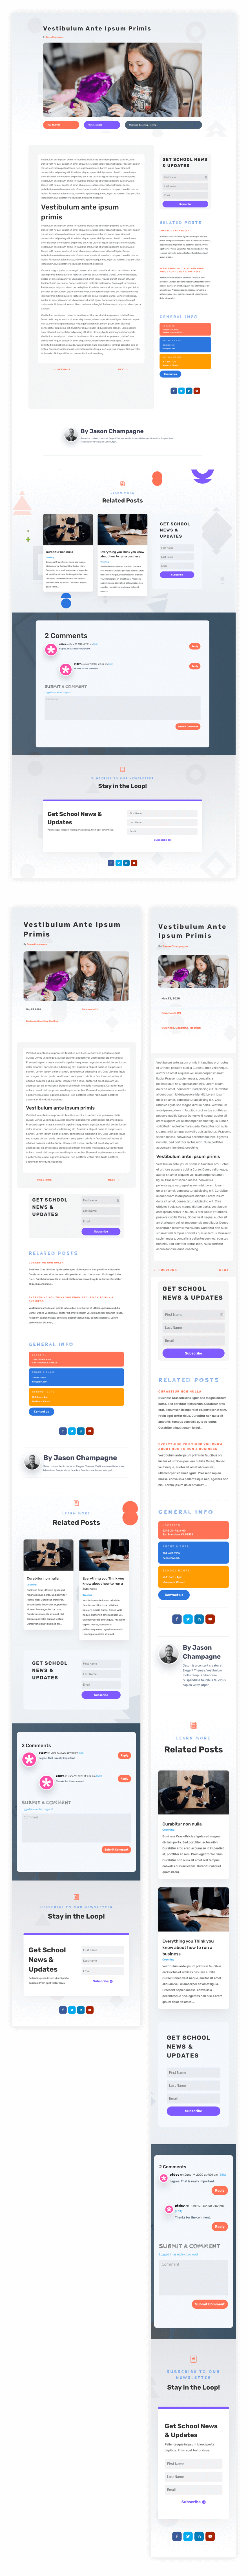 blog post template for Divi's Elementary School Layout Pack